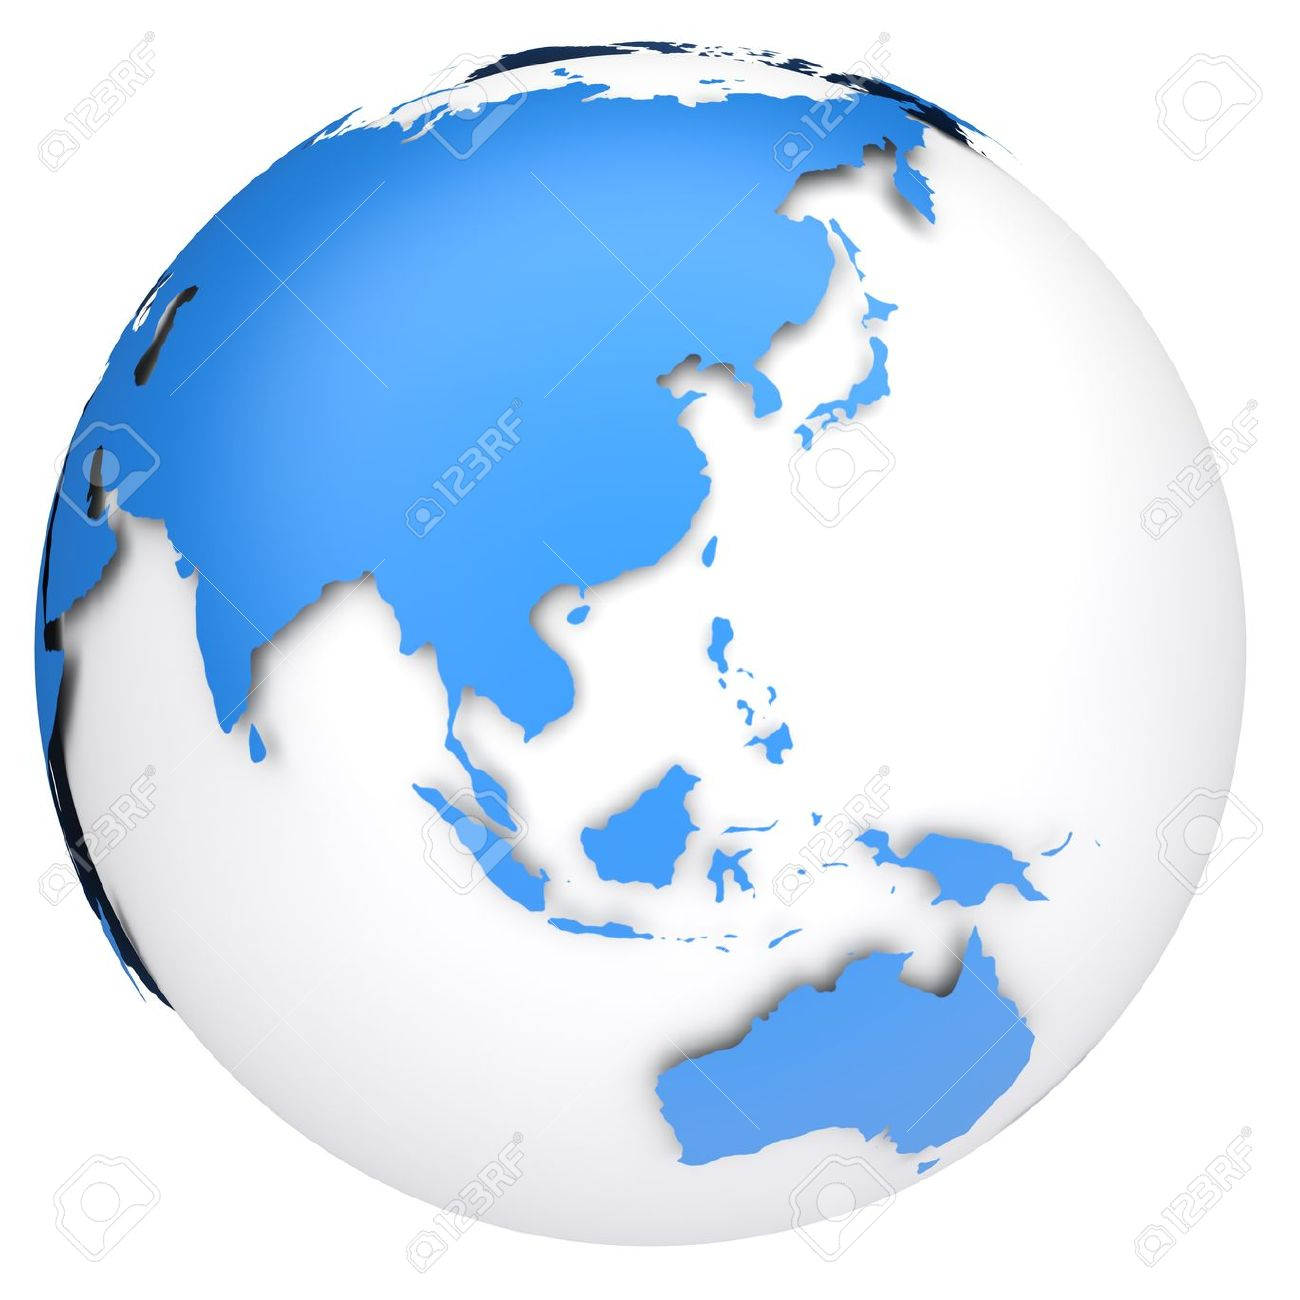 Earth globe 3d model side of asia australia and indonesia stock earth globe 3d model side of asia australia and indonesia stock photo 13361913 gumiabroncs Choice Image